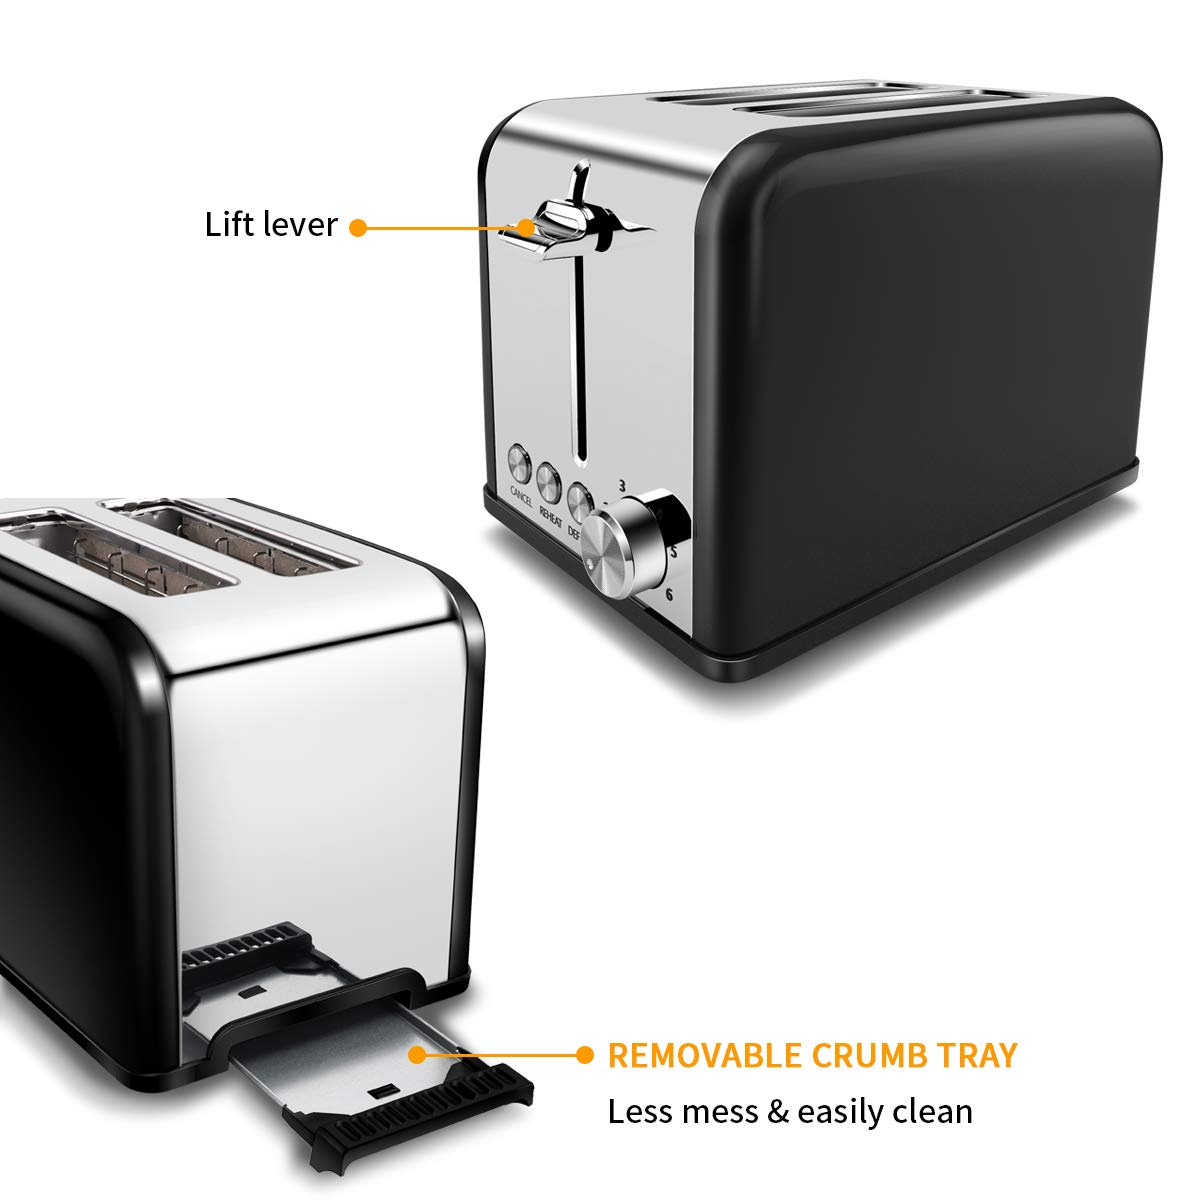 Morpilot 2 Slice-Toaster,Compact Two Slice Toaster 6 Shade Settings, Small Toaster with Cancel/REHEAT/DEFROST Function,Extra Wide Slot Compact Stainless Steel Toasters for Bread Waffles,Black